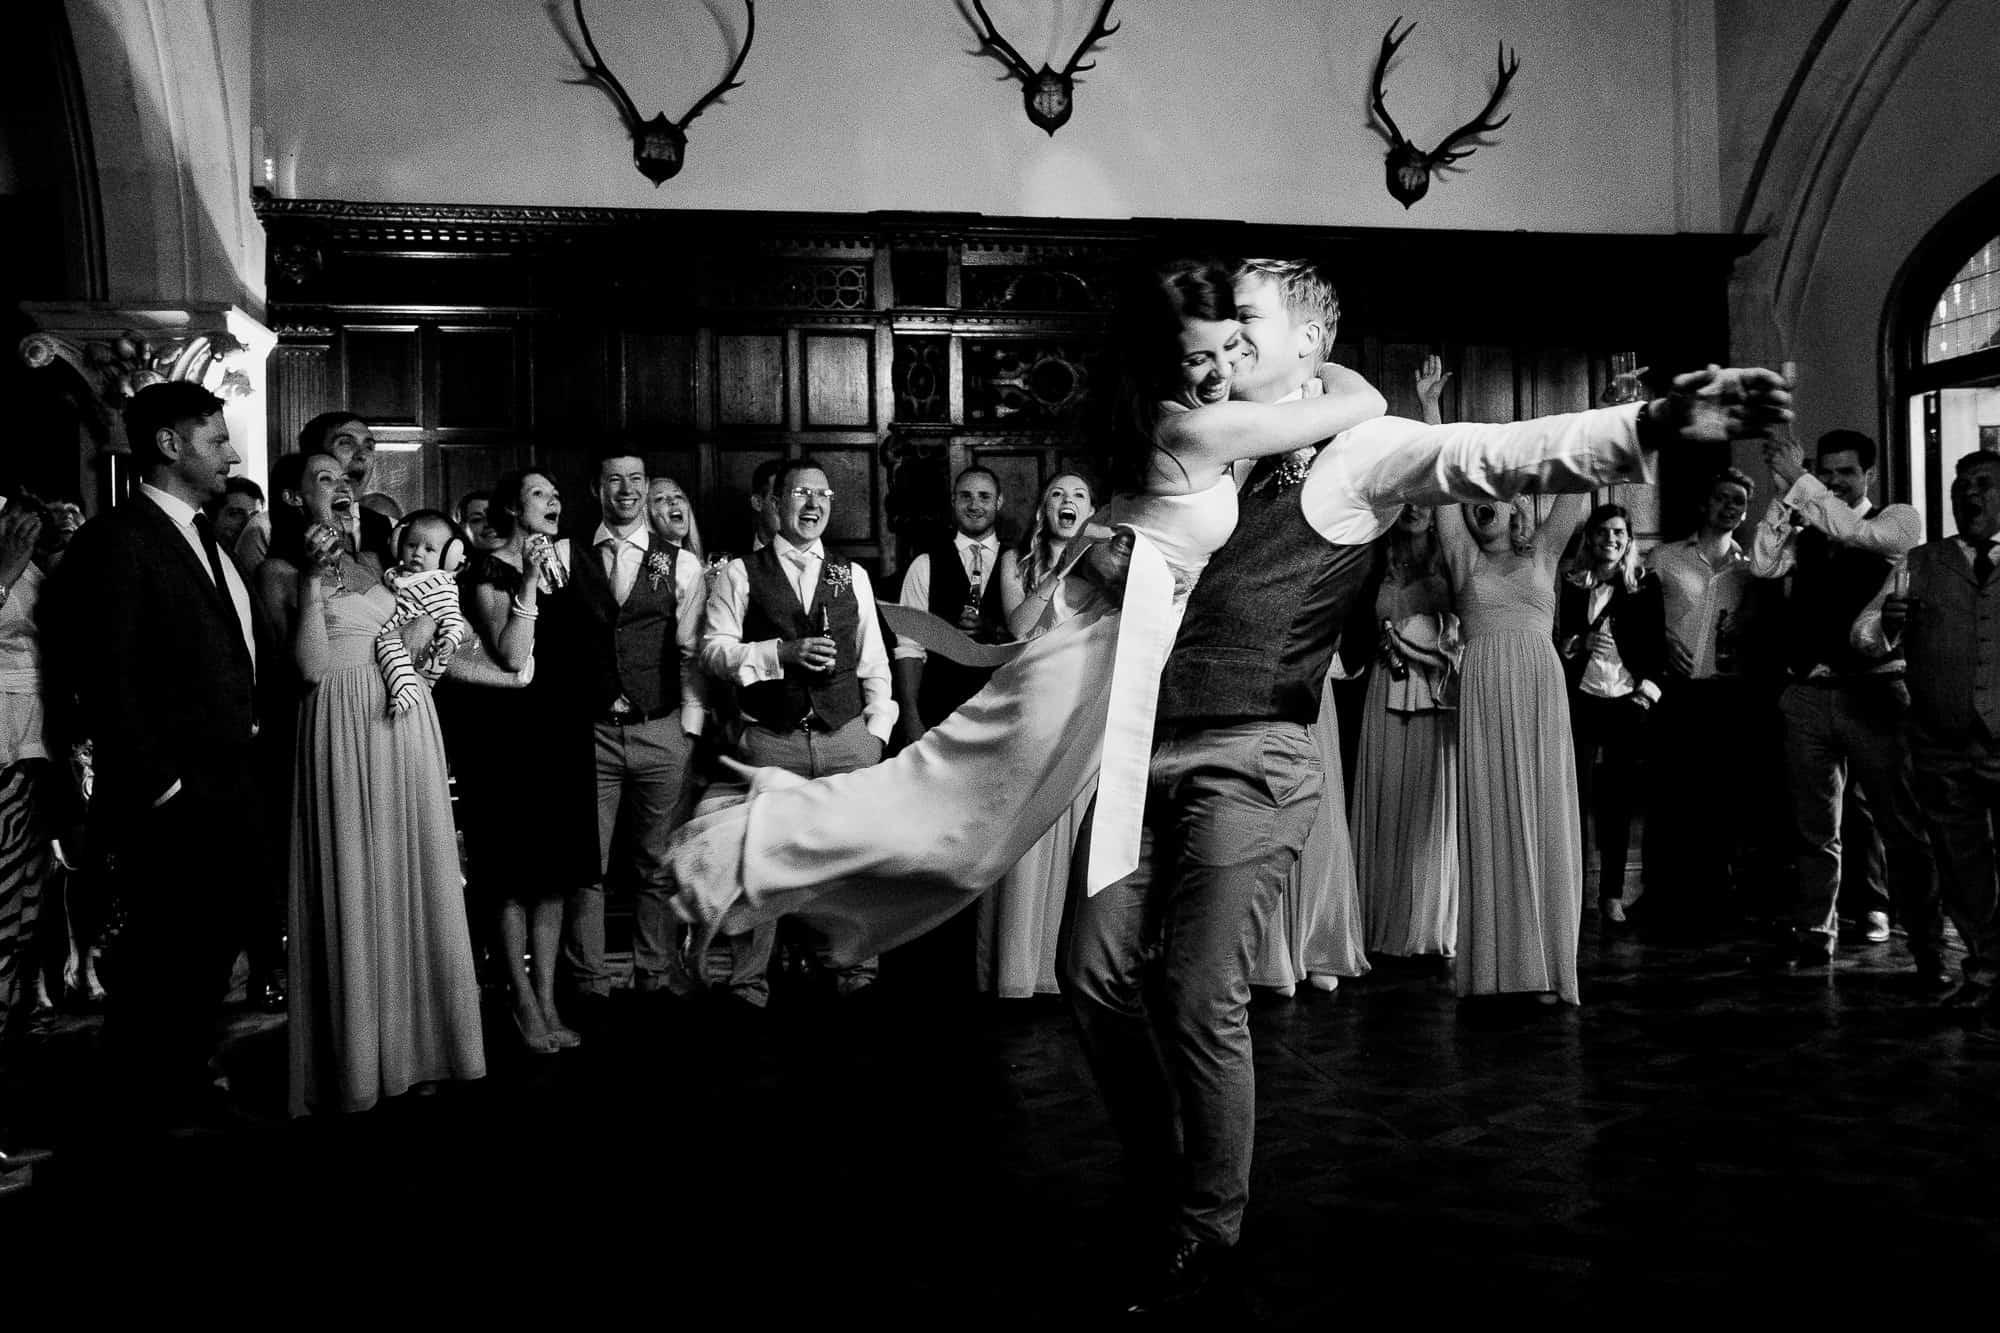 huntsham-court-wedding-photography-matt-tyler-0063